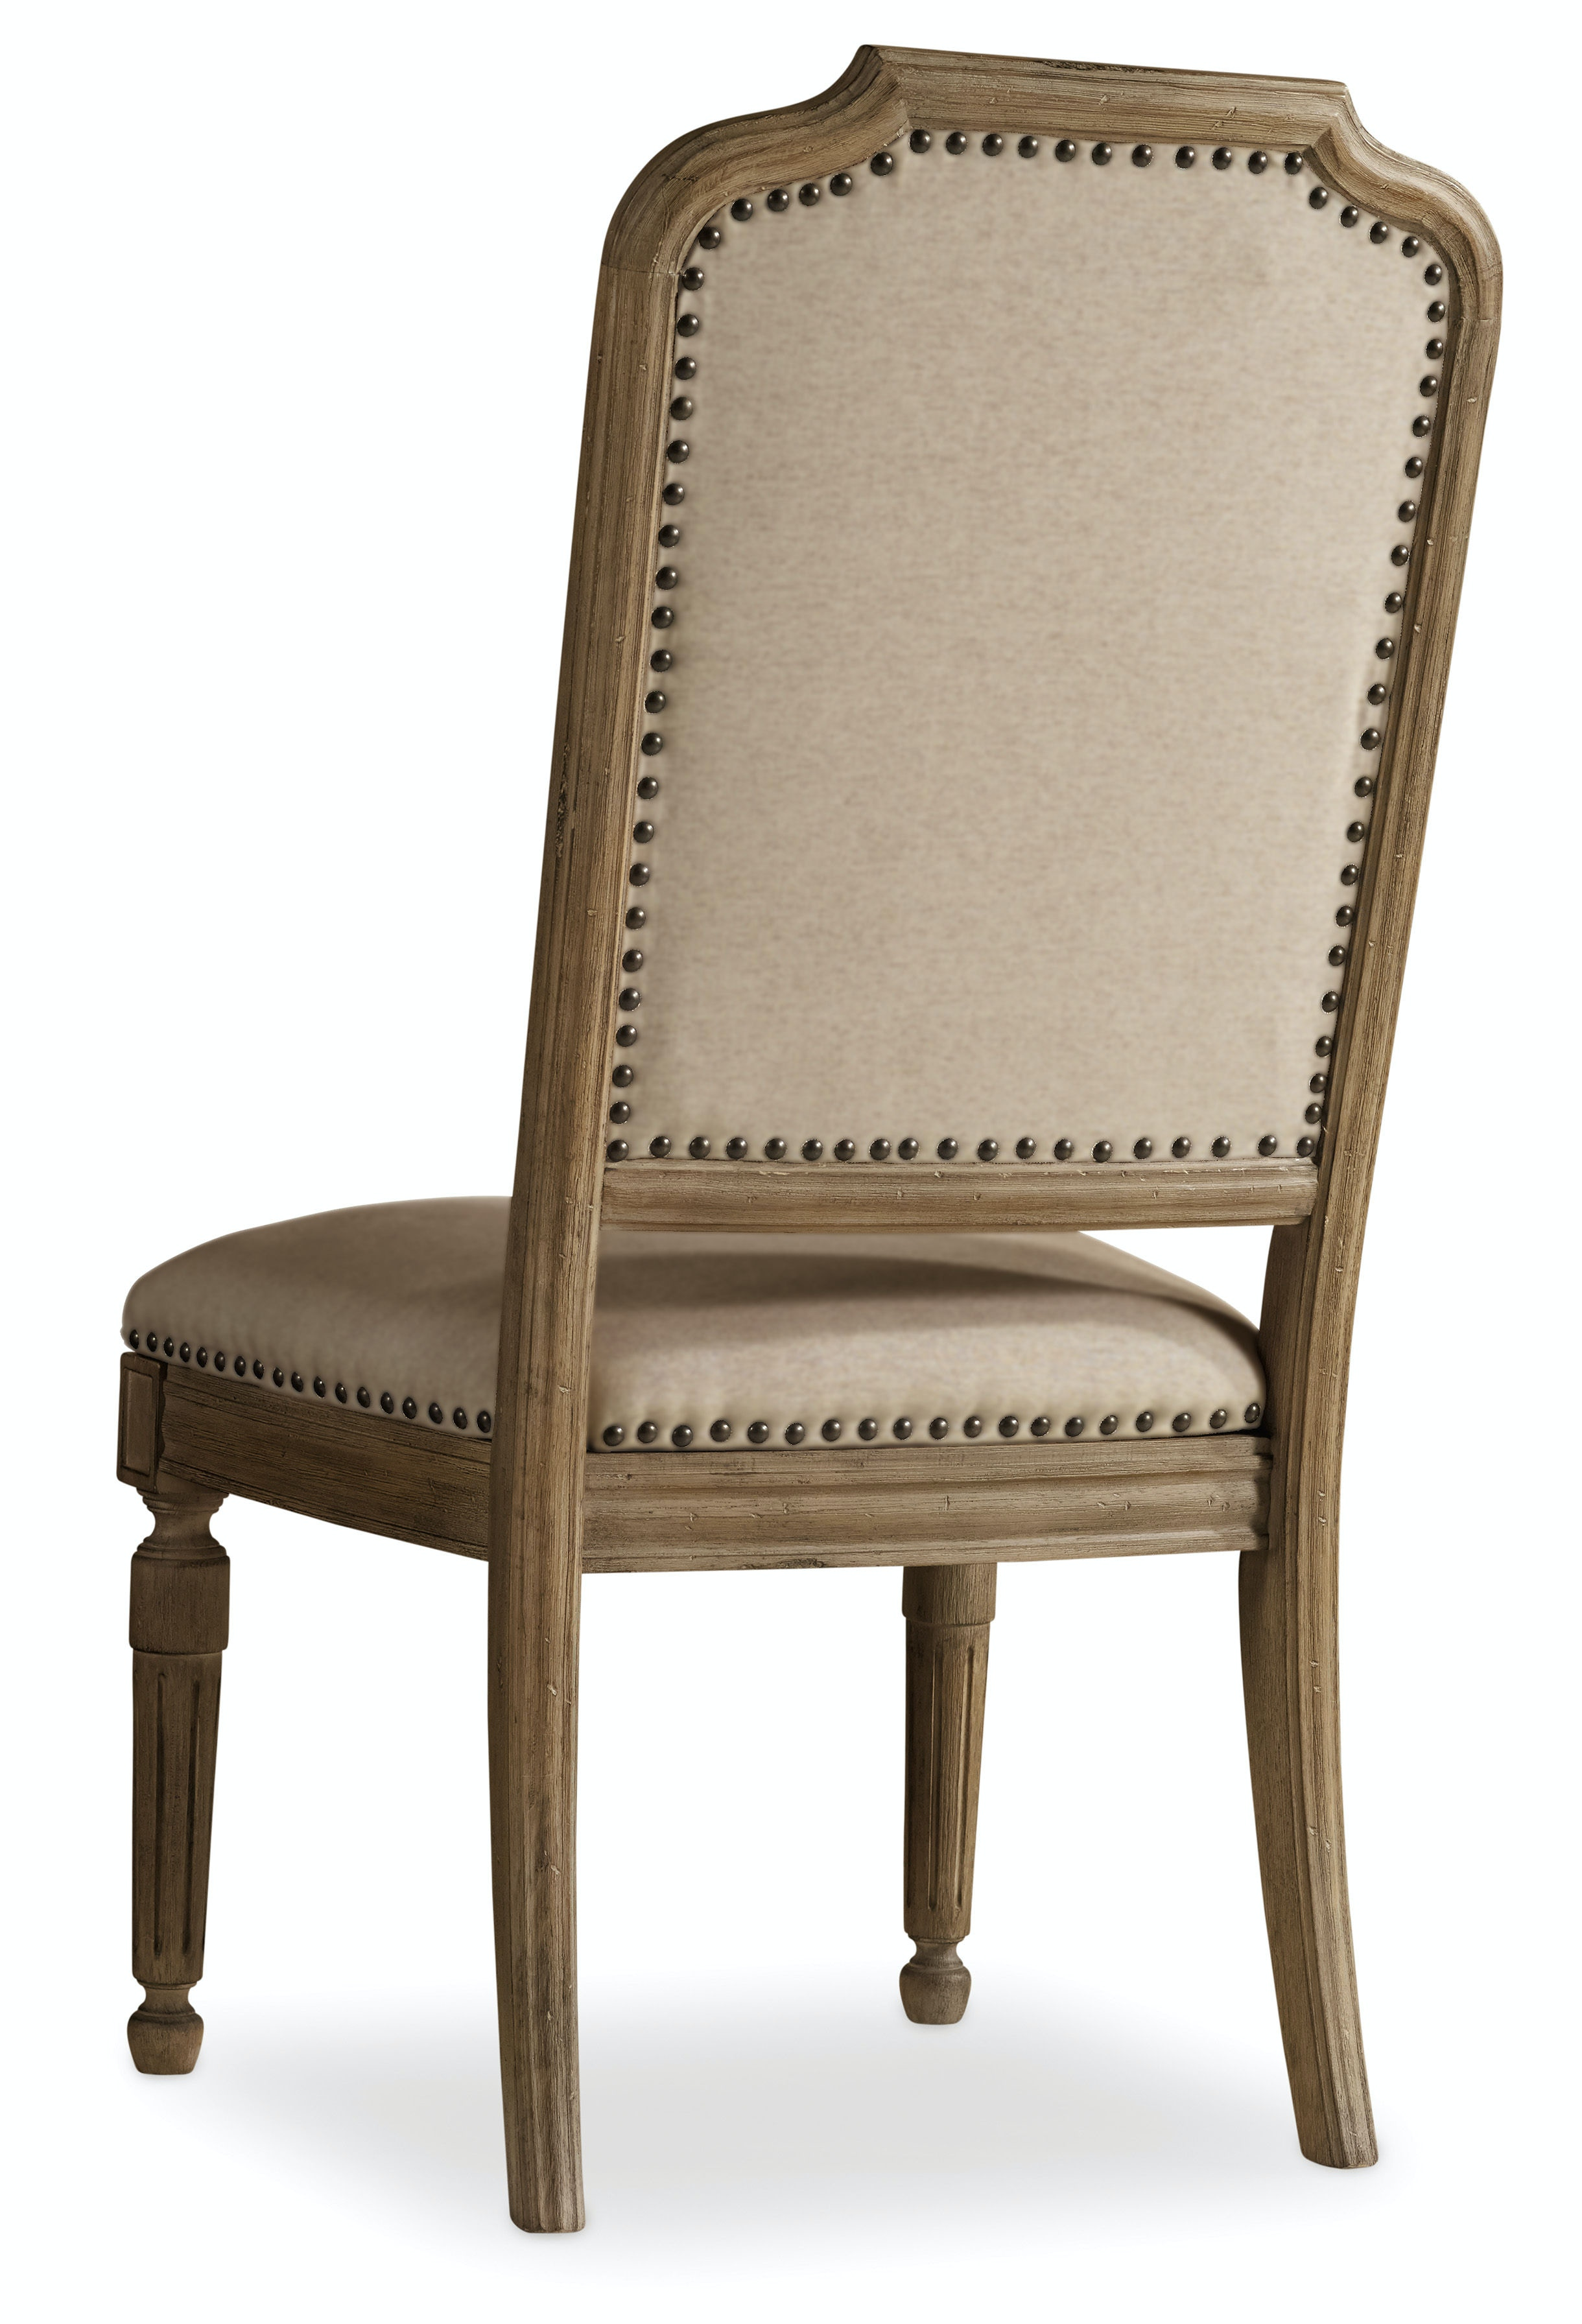 Upholstered dining room side chairs